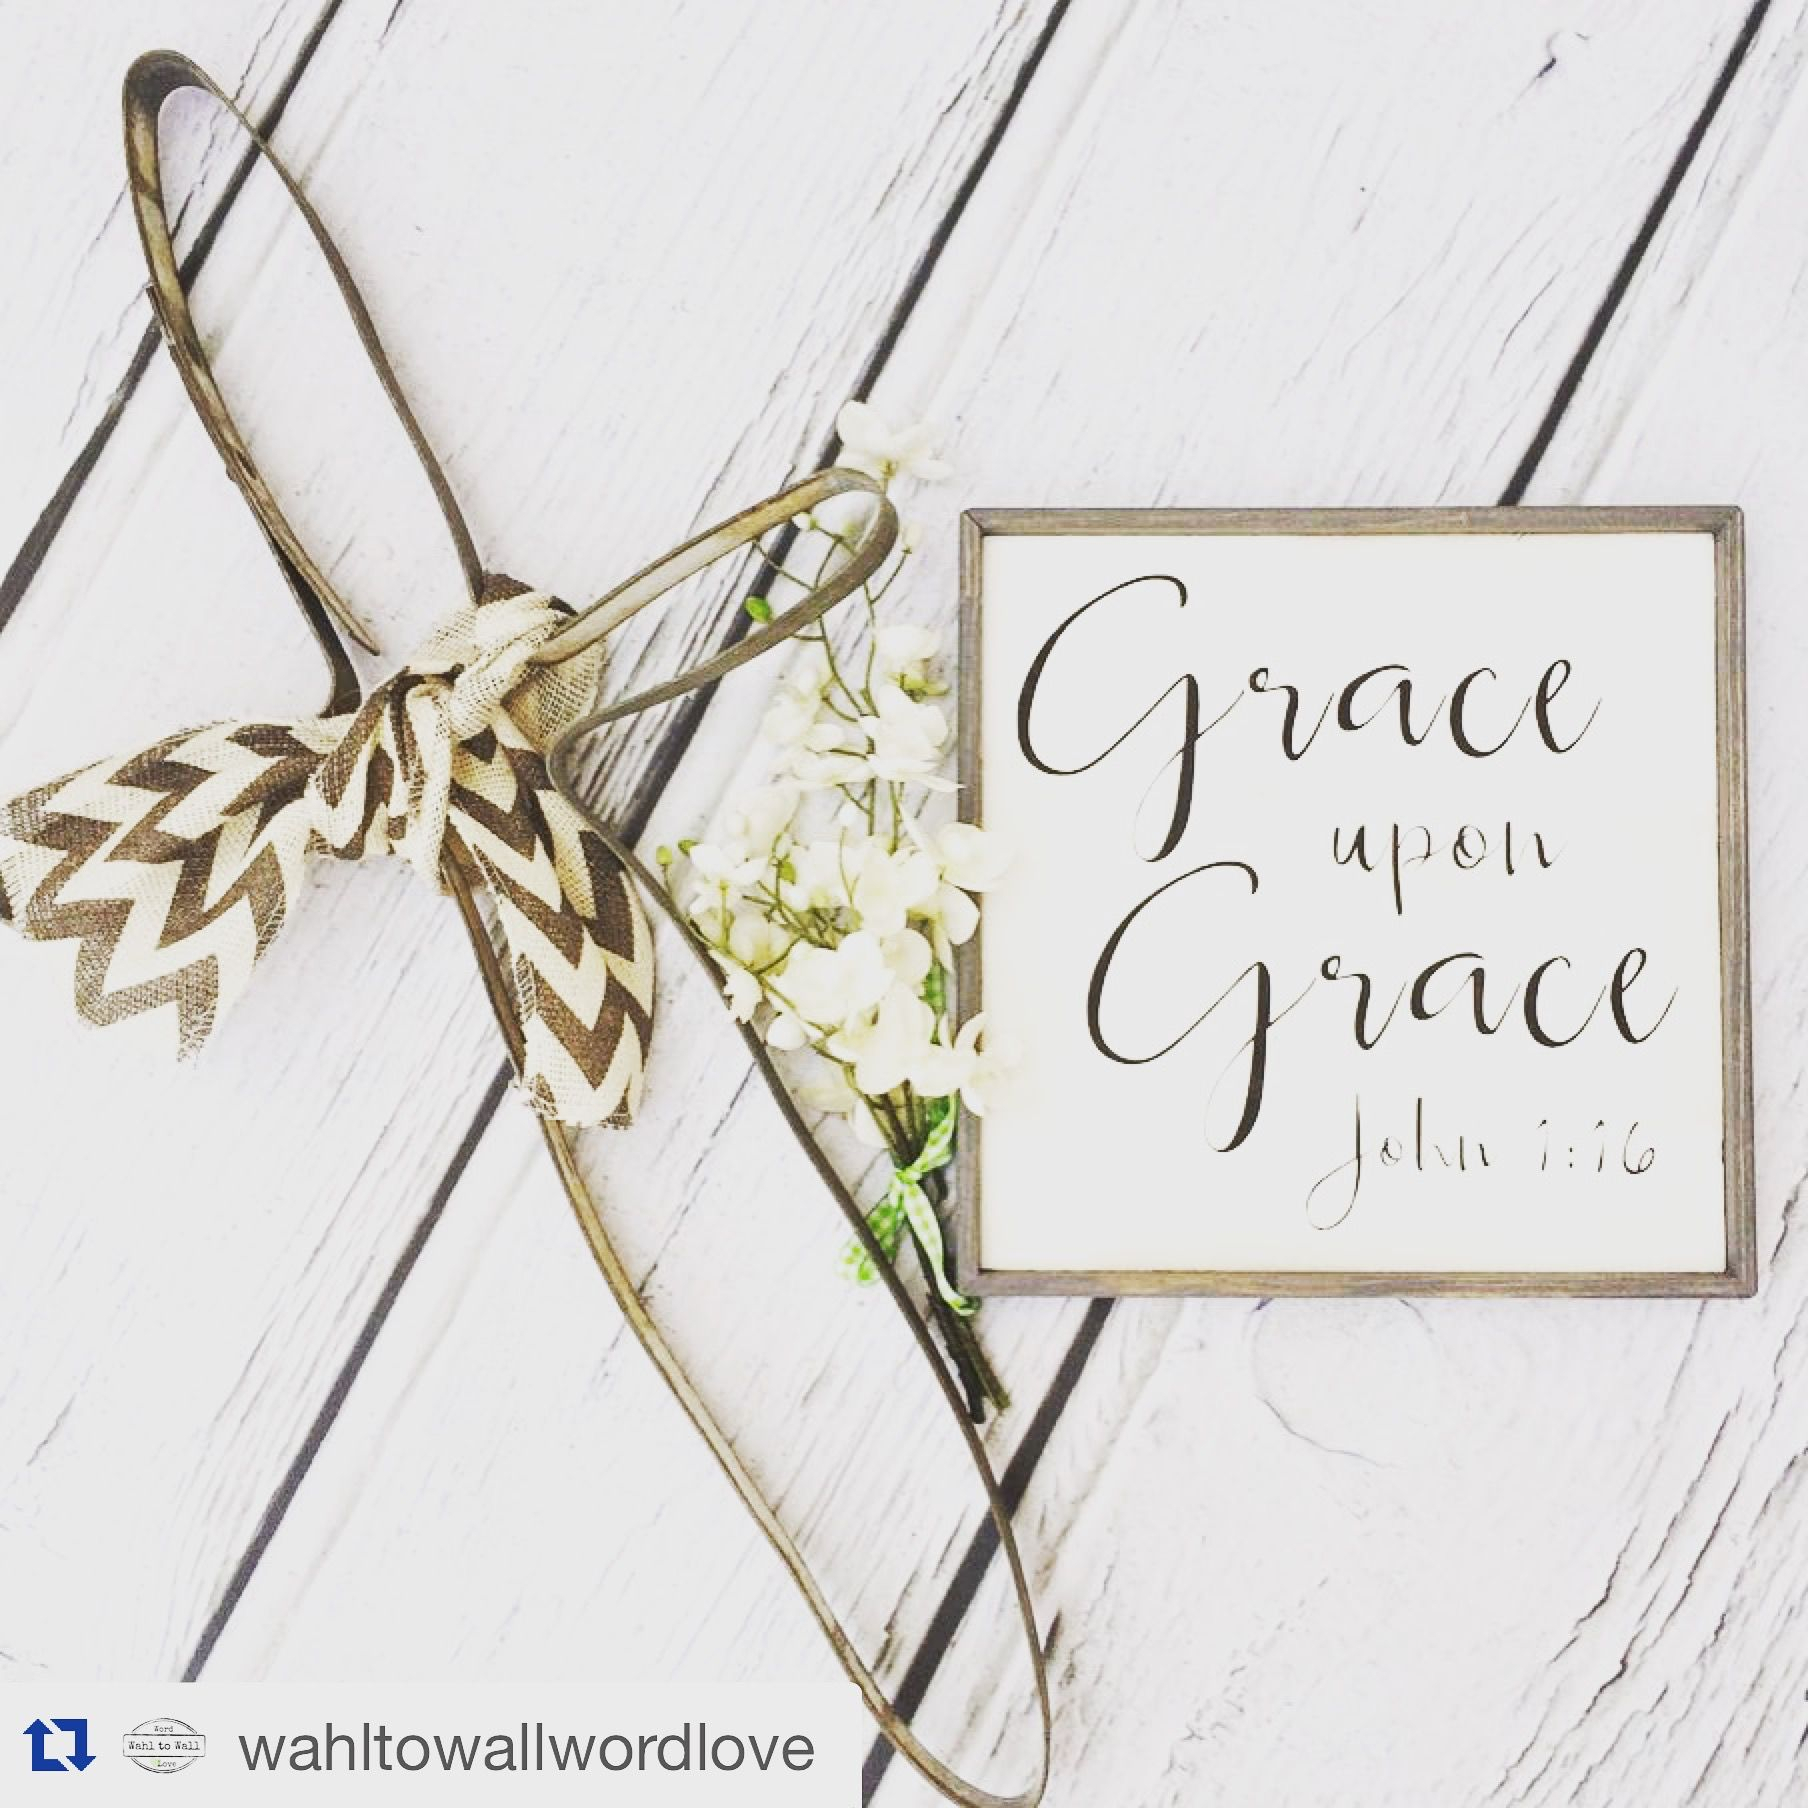 Pincoreen Pike On Godly Quotes   Scripture Signs, Bible With Regard To Most Recent Blended Fabric Amazing Grace Wall Hangings (View 9 of 20)